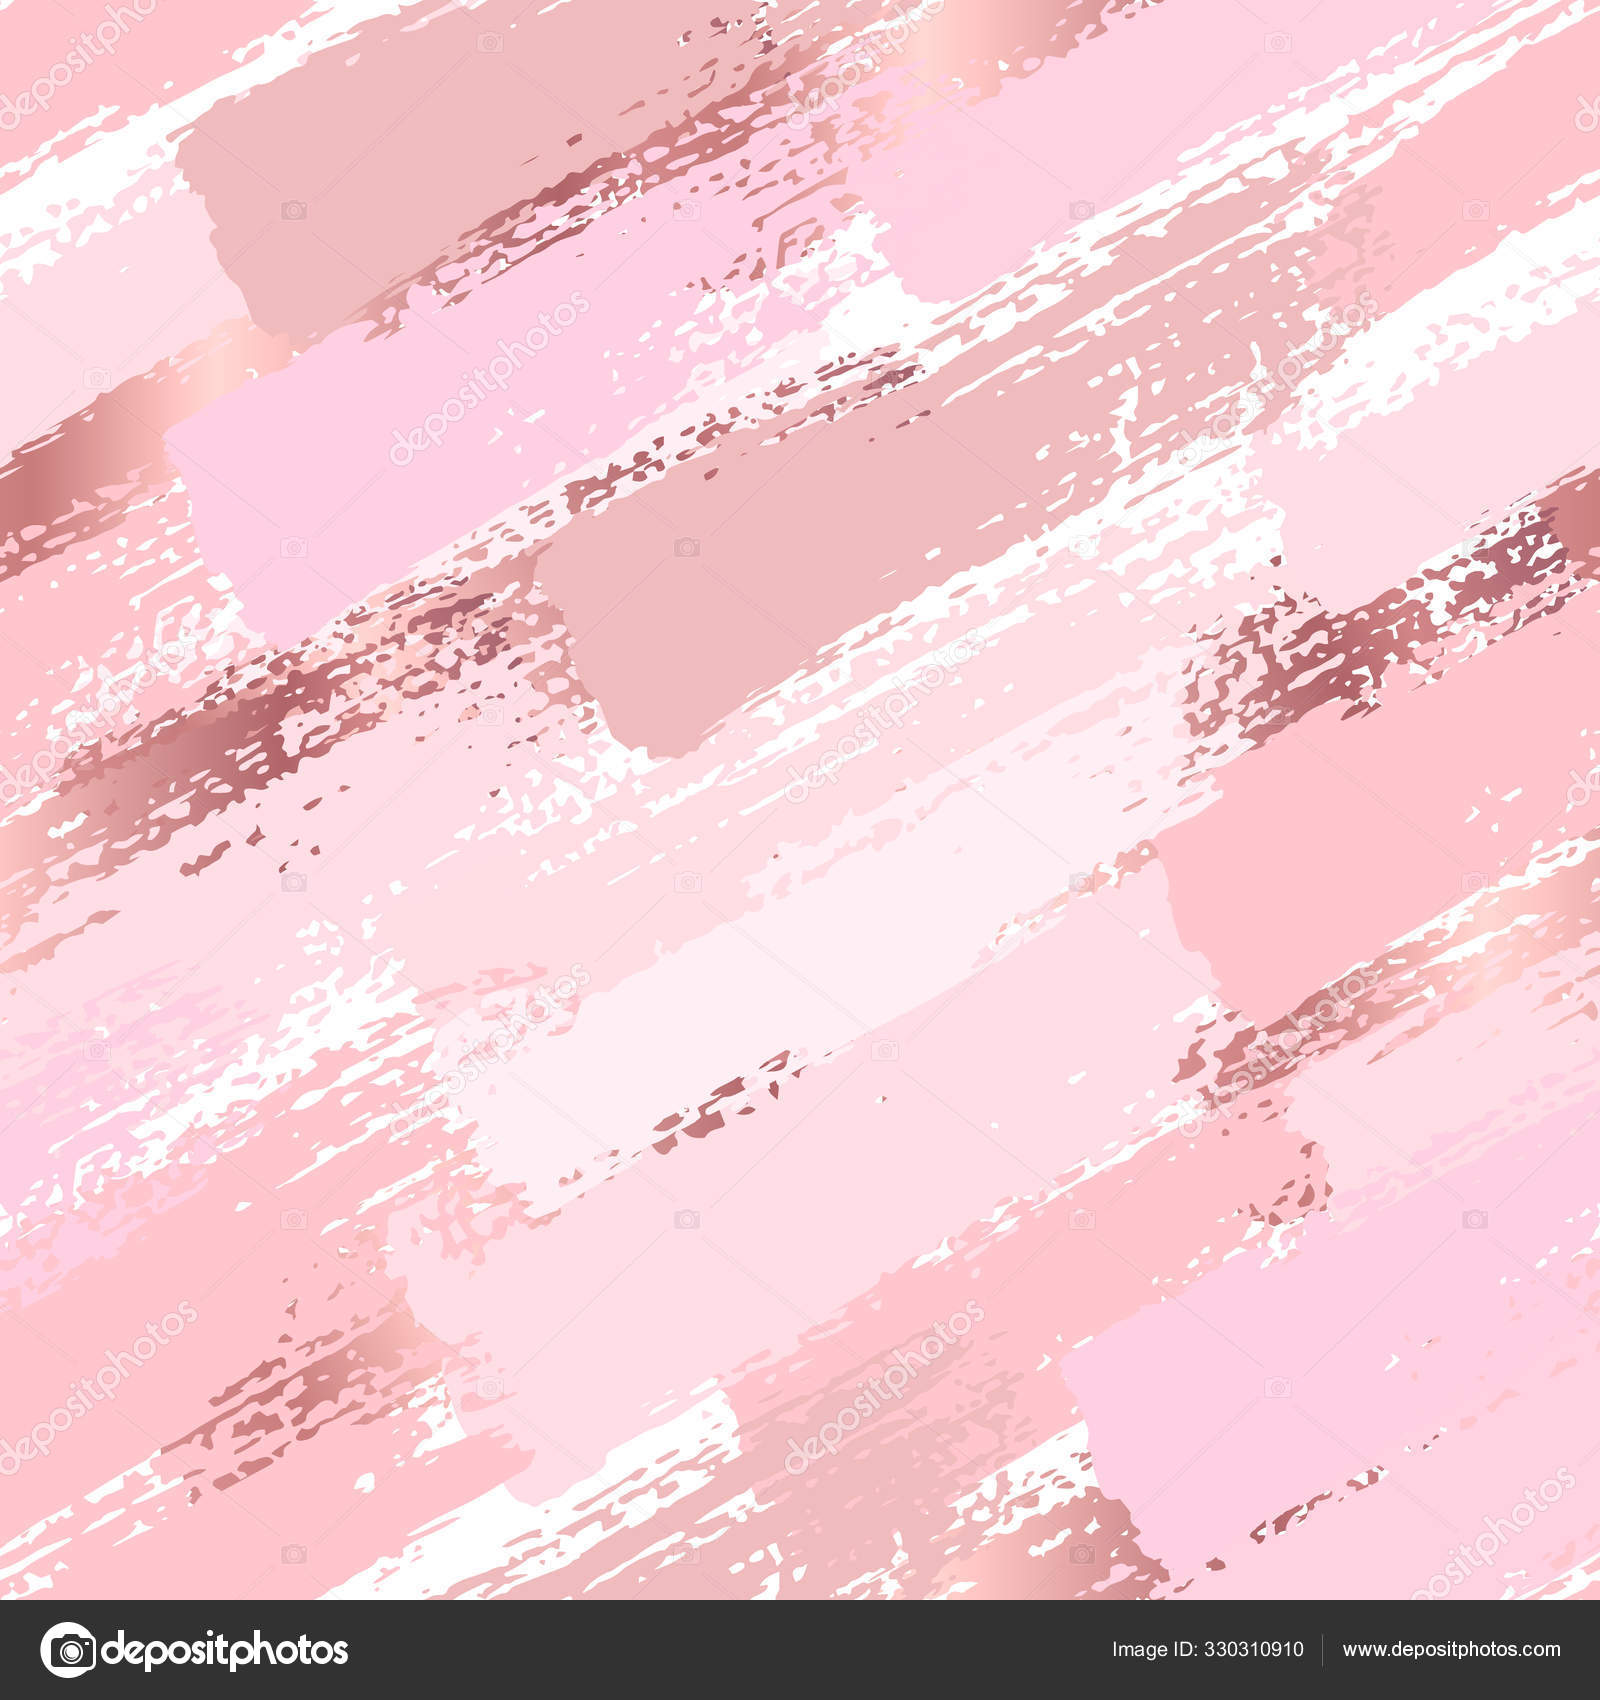 Seamless Pattern With Pastel Pink Brush Strokes Abstract Vector Stock Vector C Artemisia1508 Gmail Com 330310910